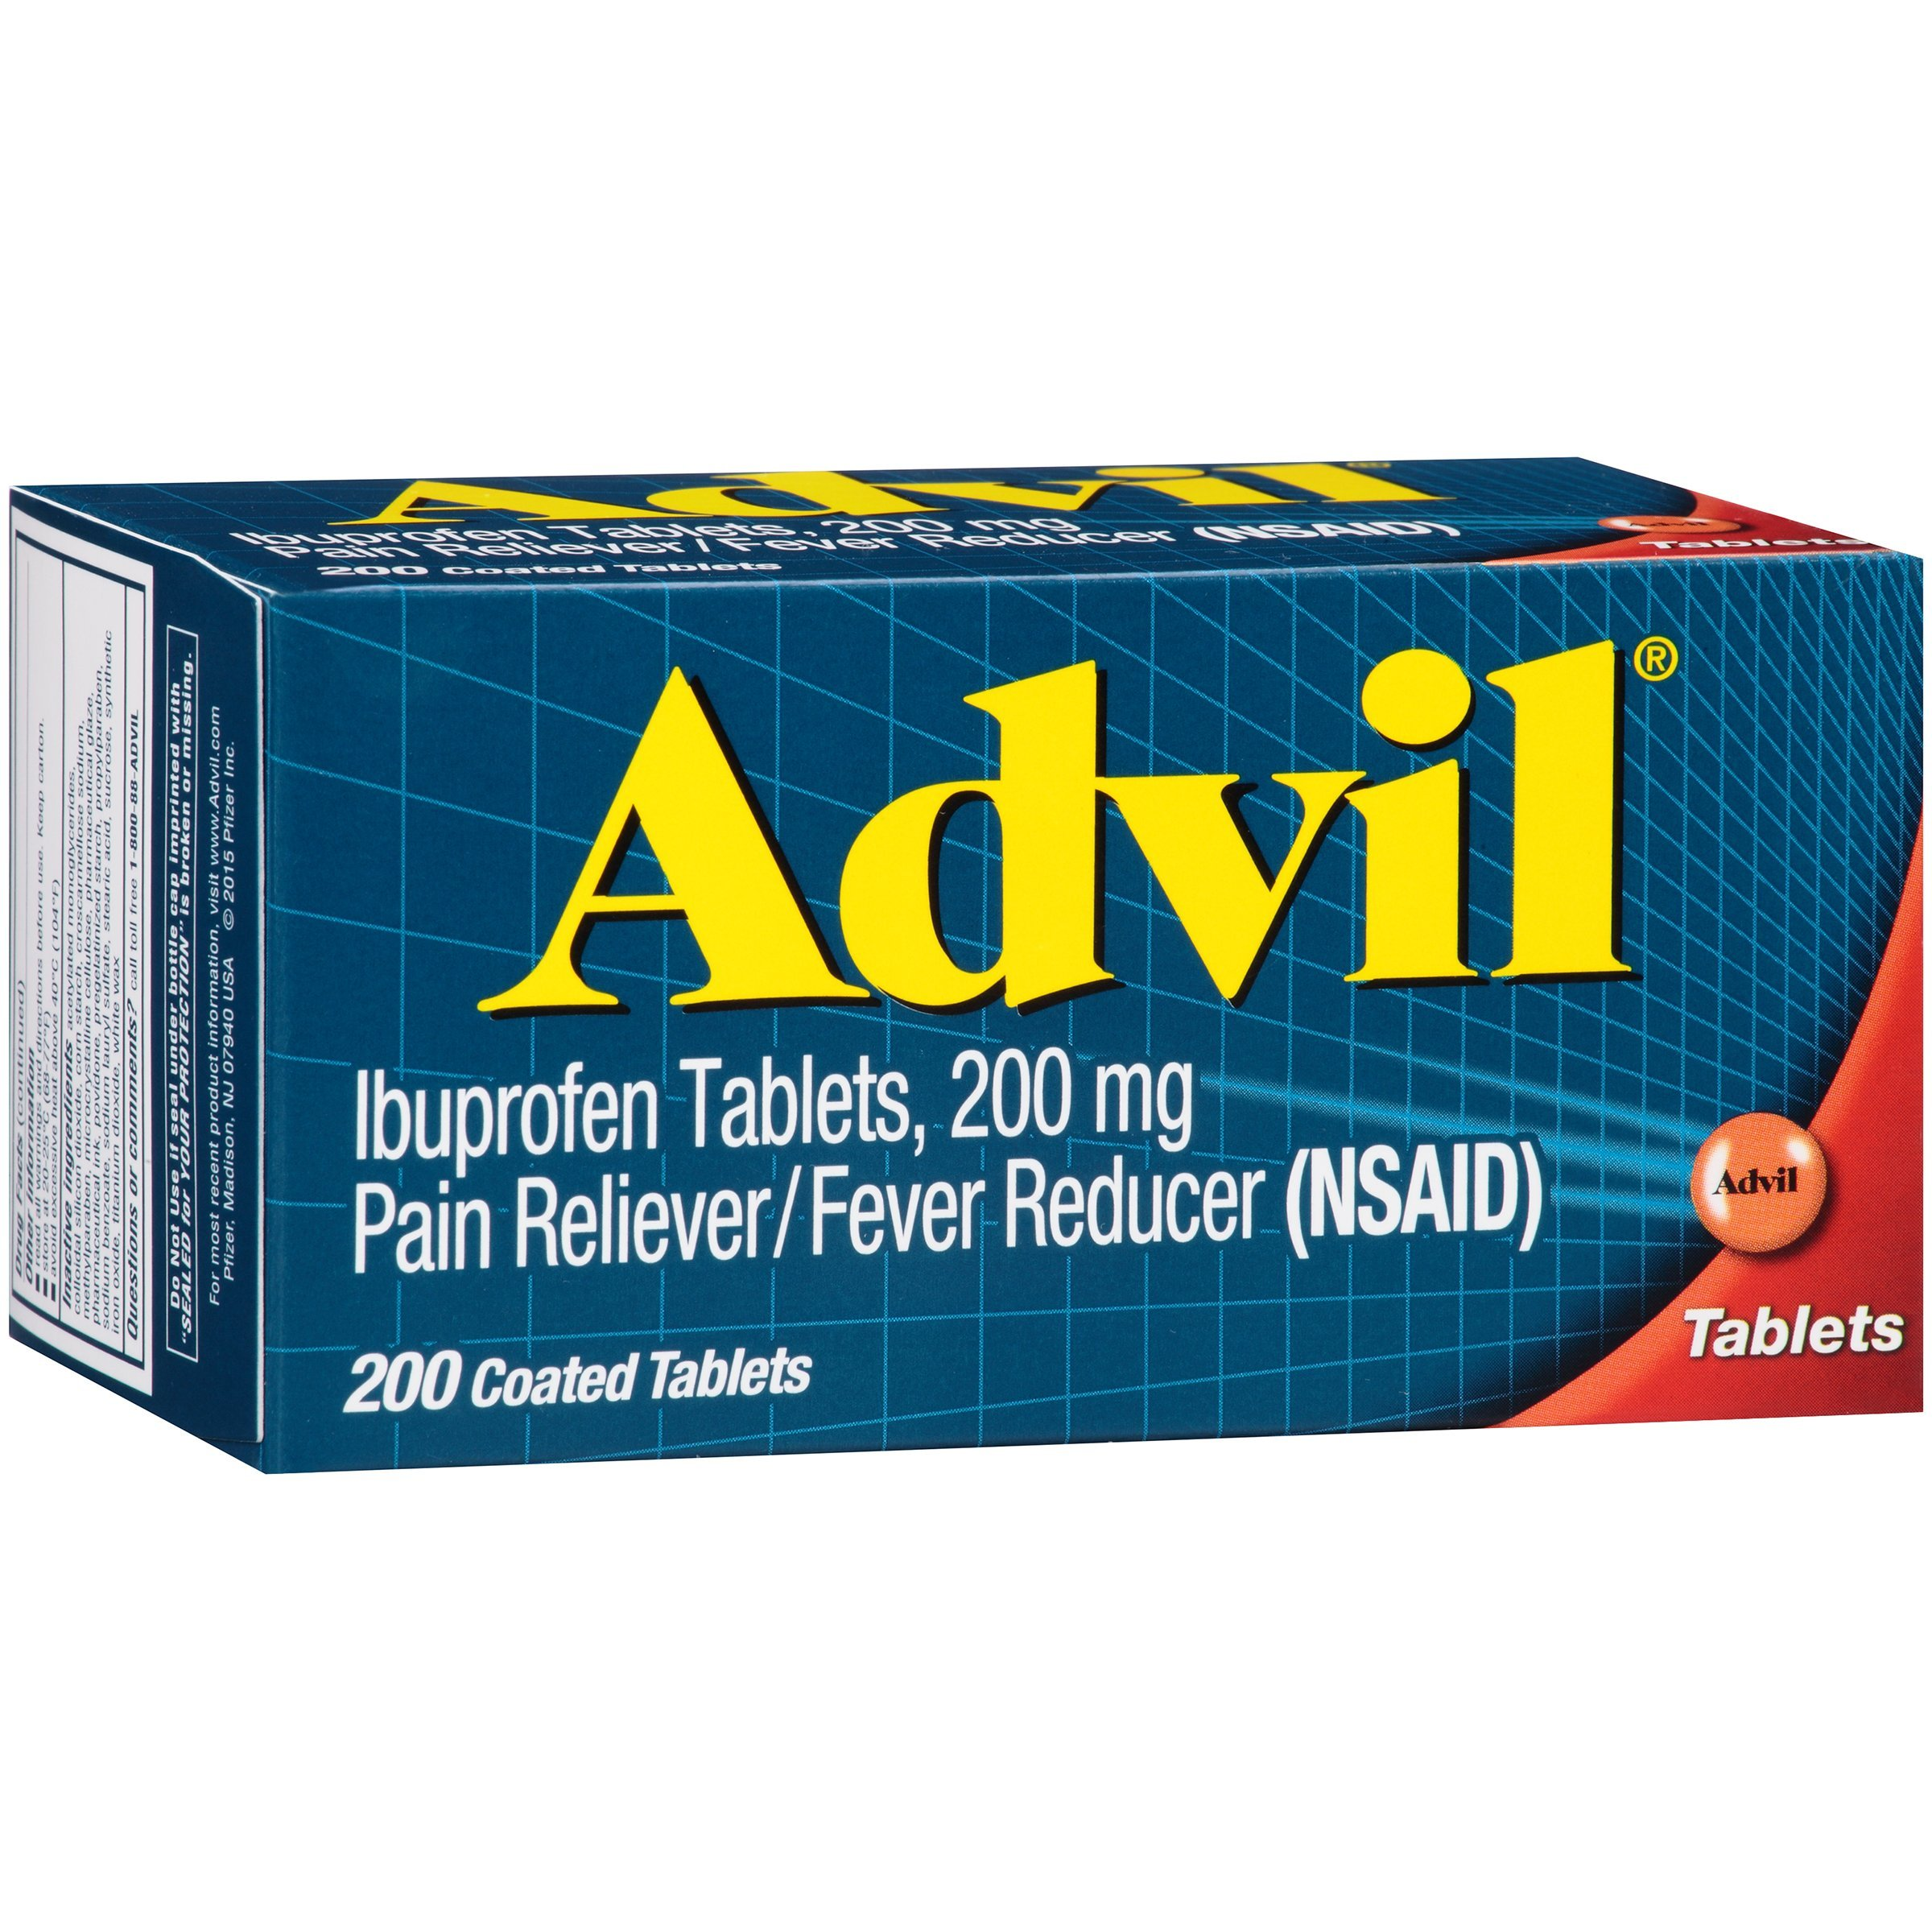 Advil (200 Count) Pain Reliever / Fever Reducer Coated Tablet, 200mg Ibuprofen, Temporary Pain Relief